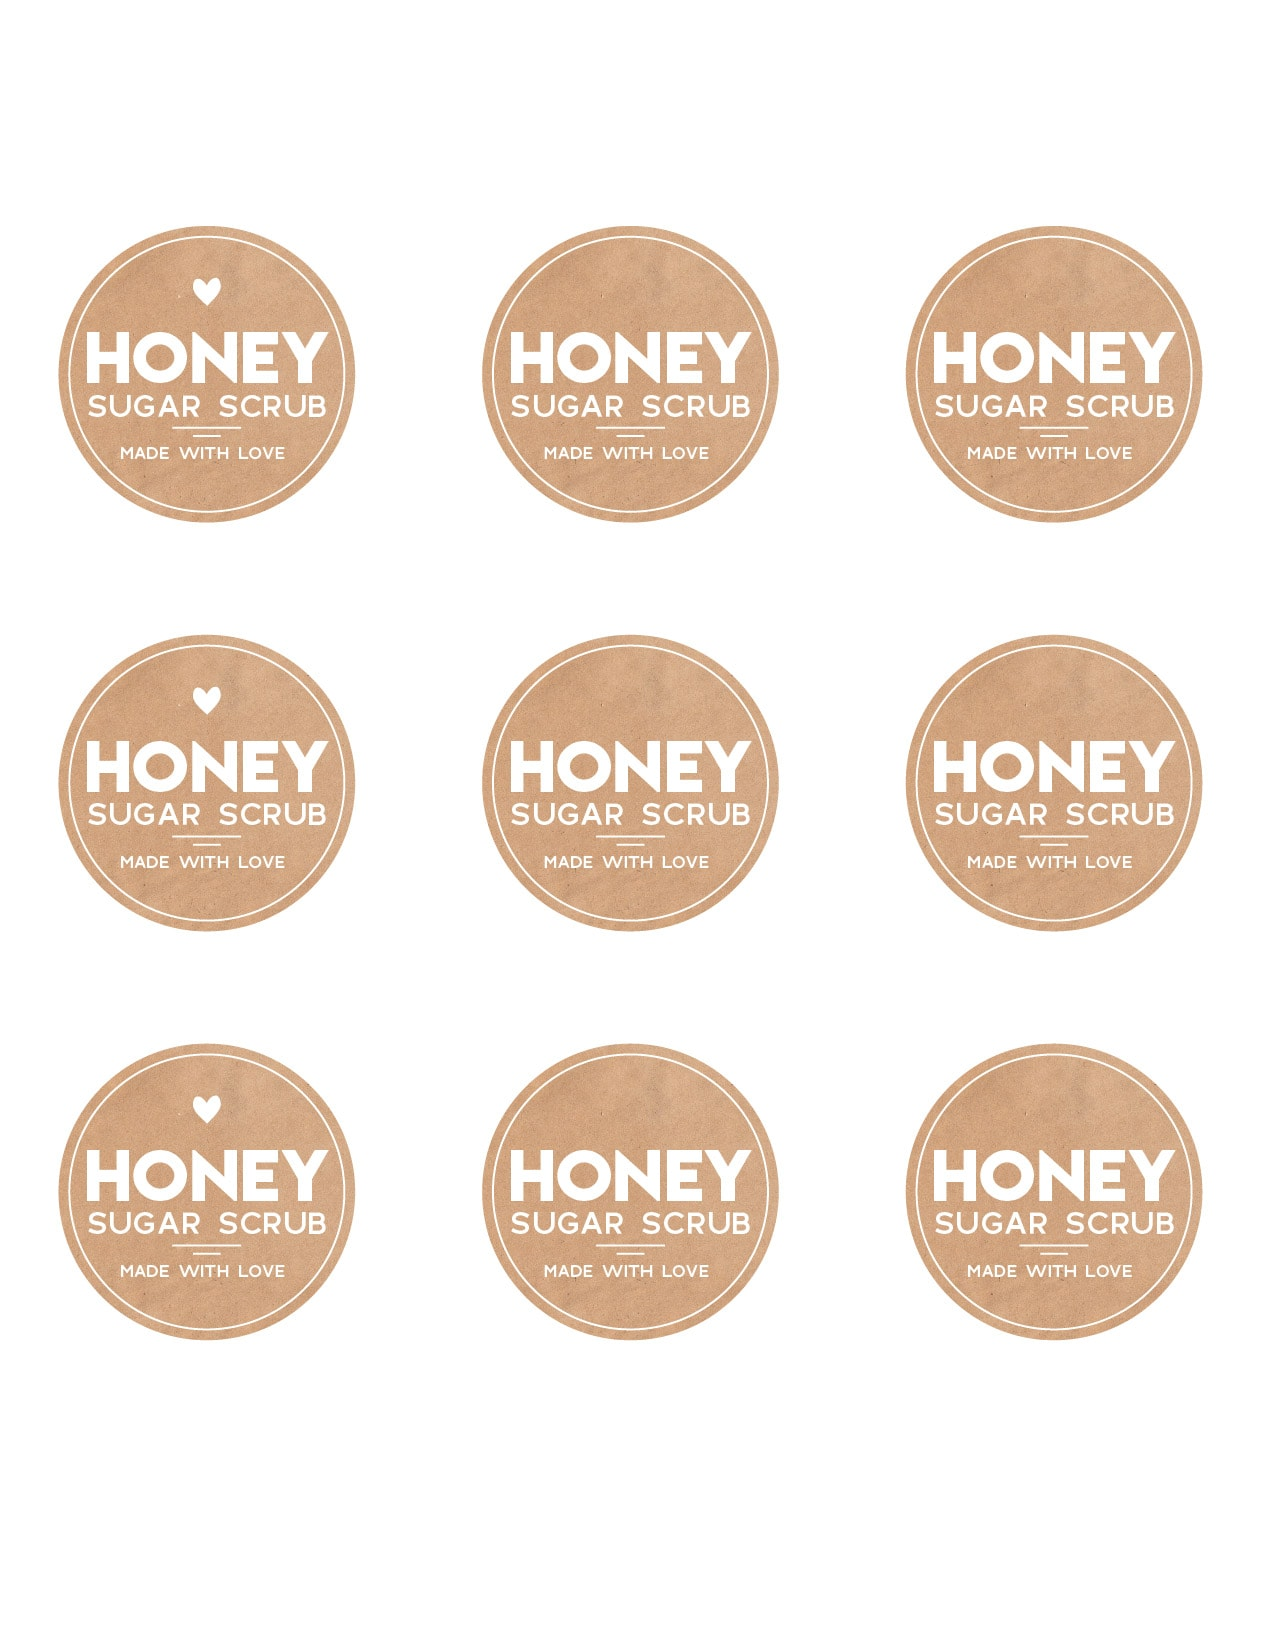 Honey sugar scrub free printable labels